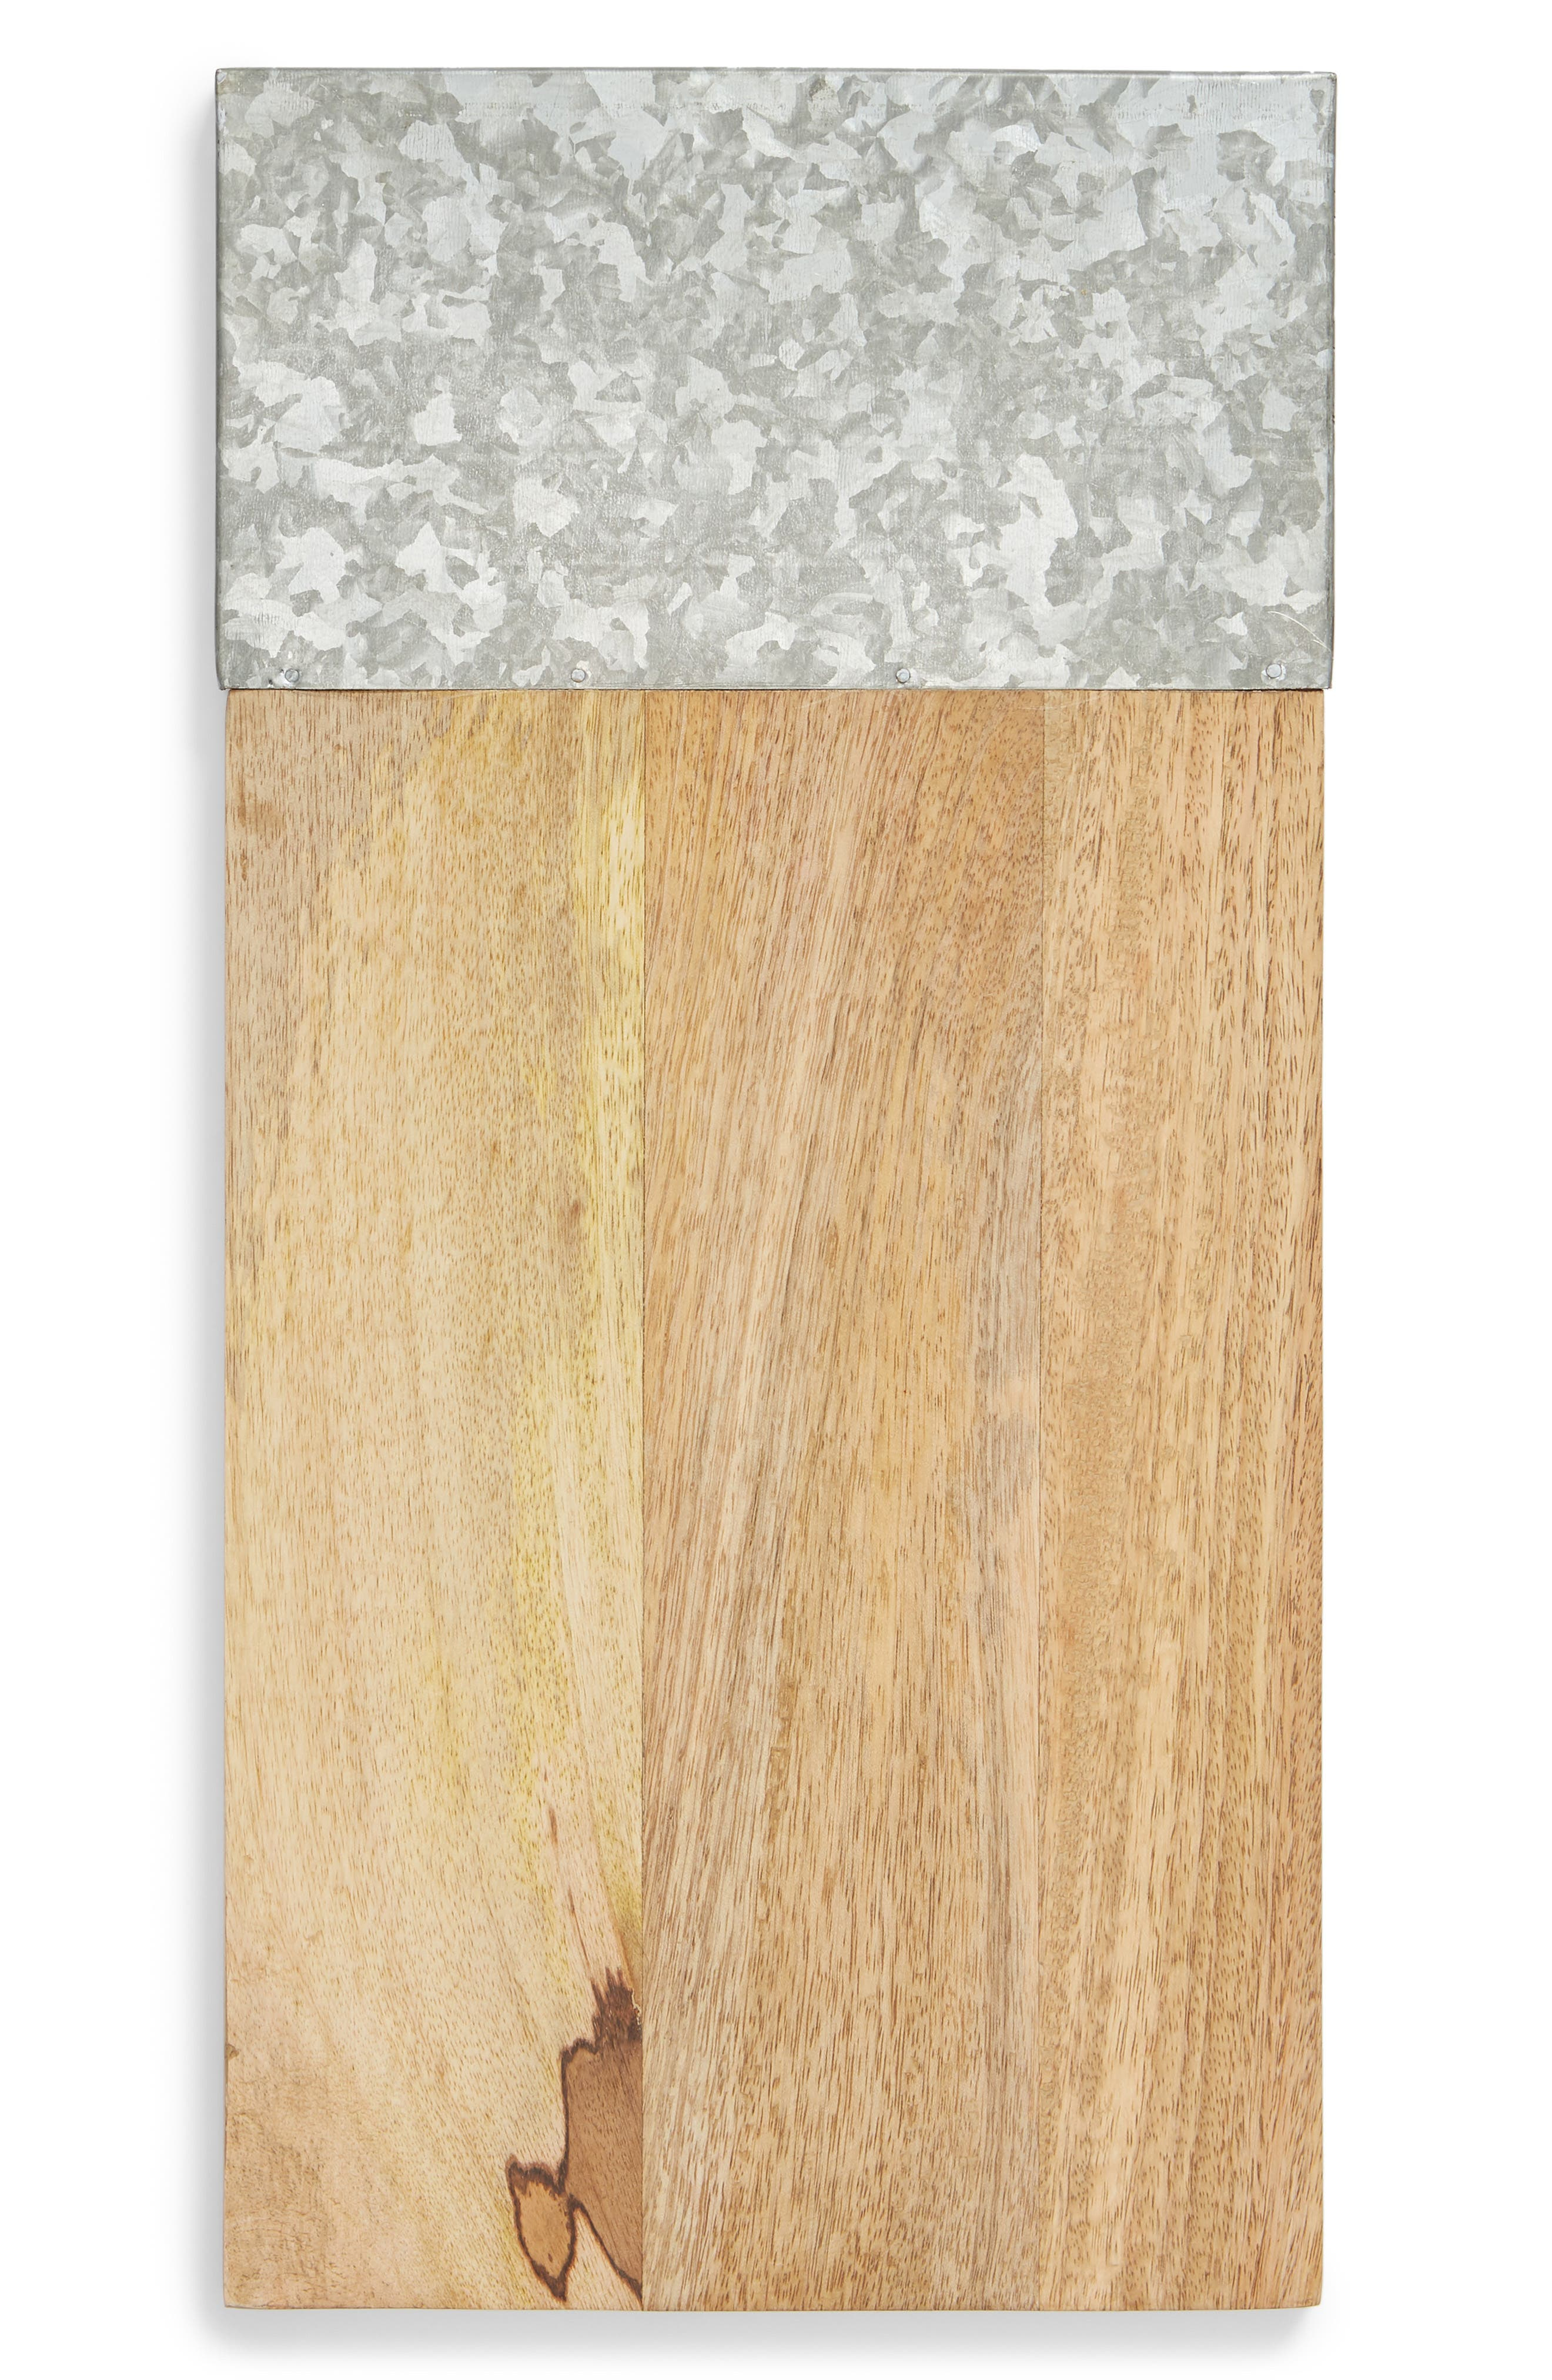 Nordstrom at Home Wood & Galvanized Iron Serving Board